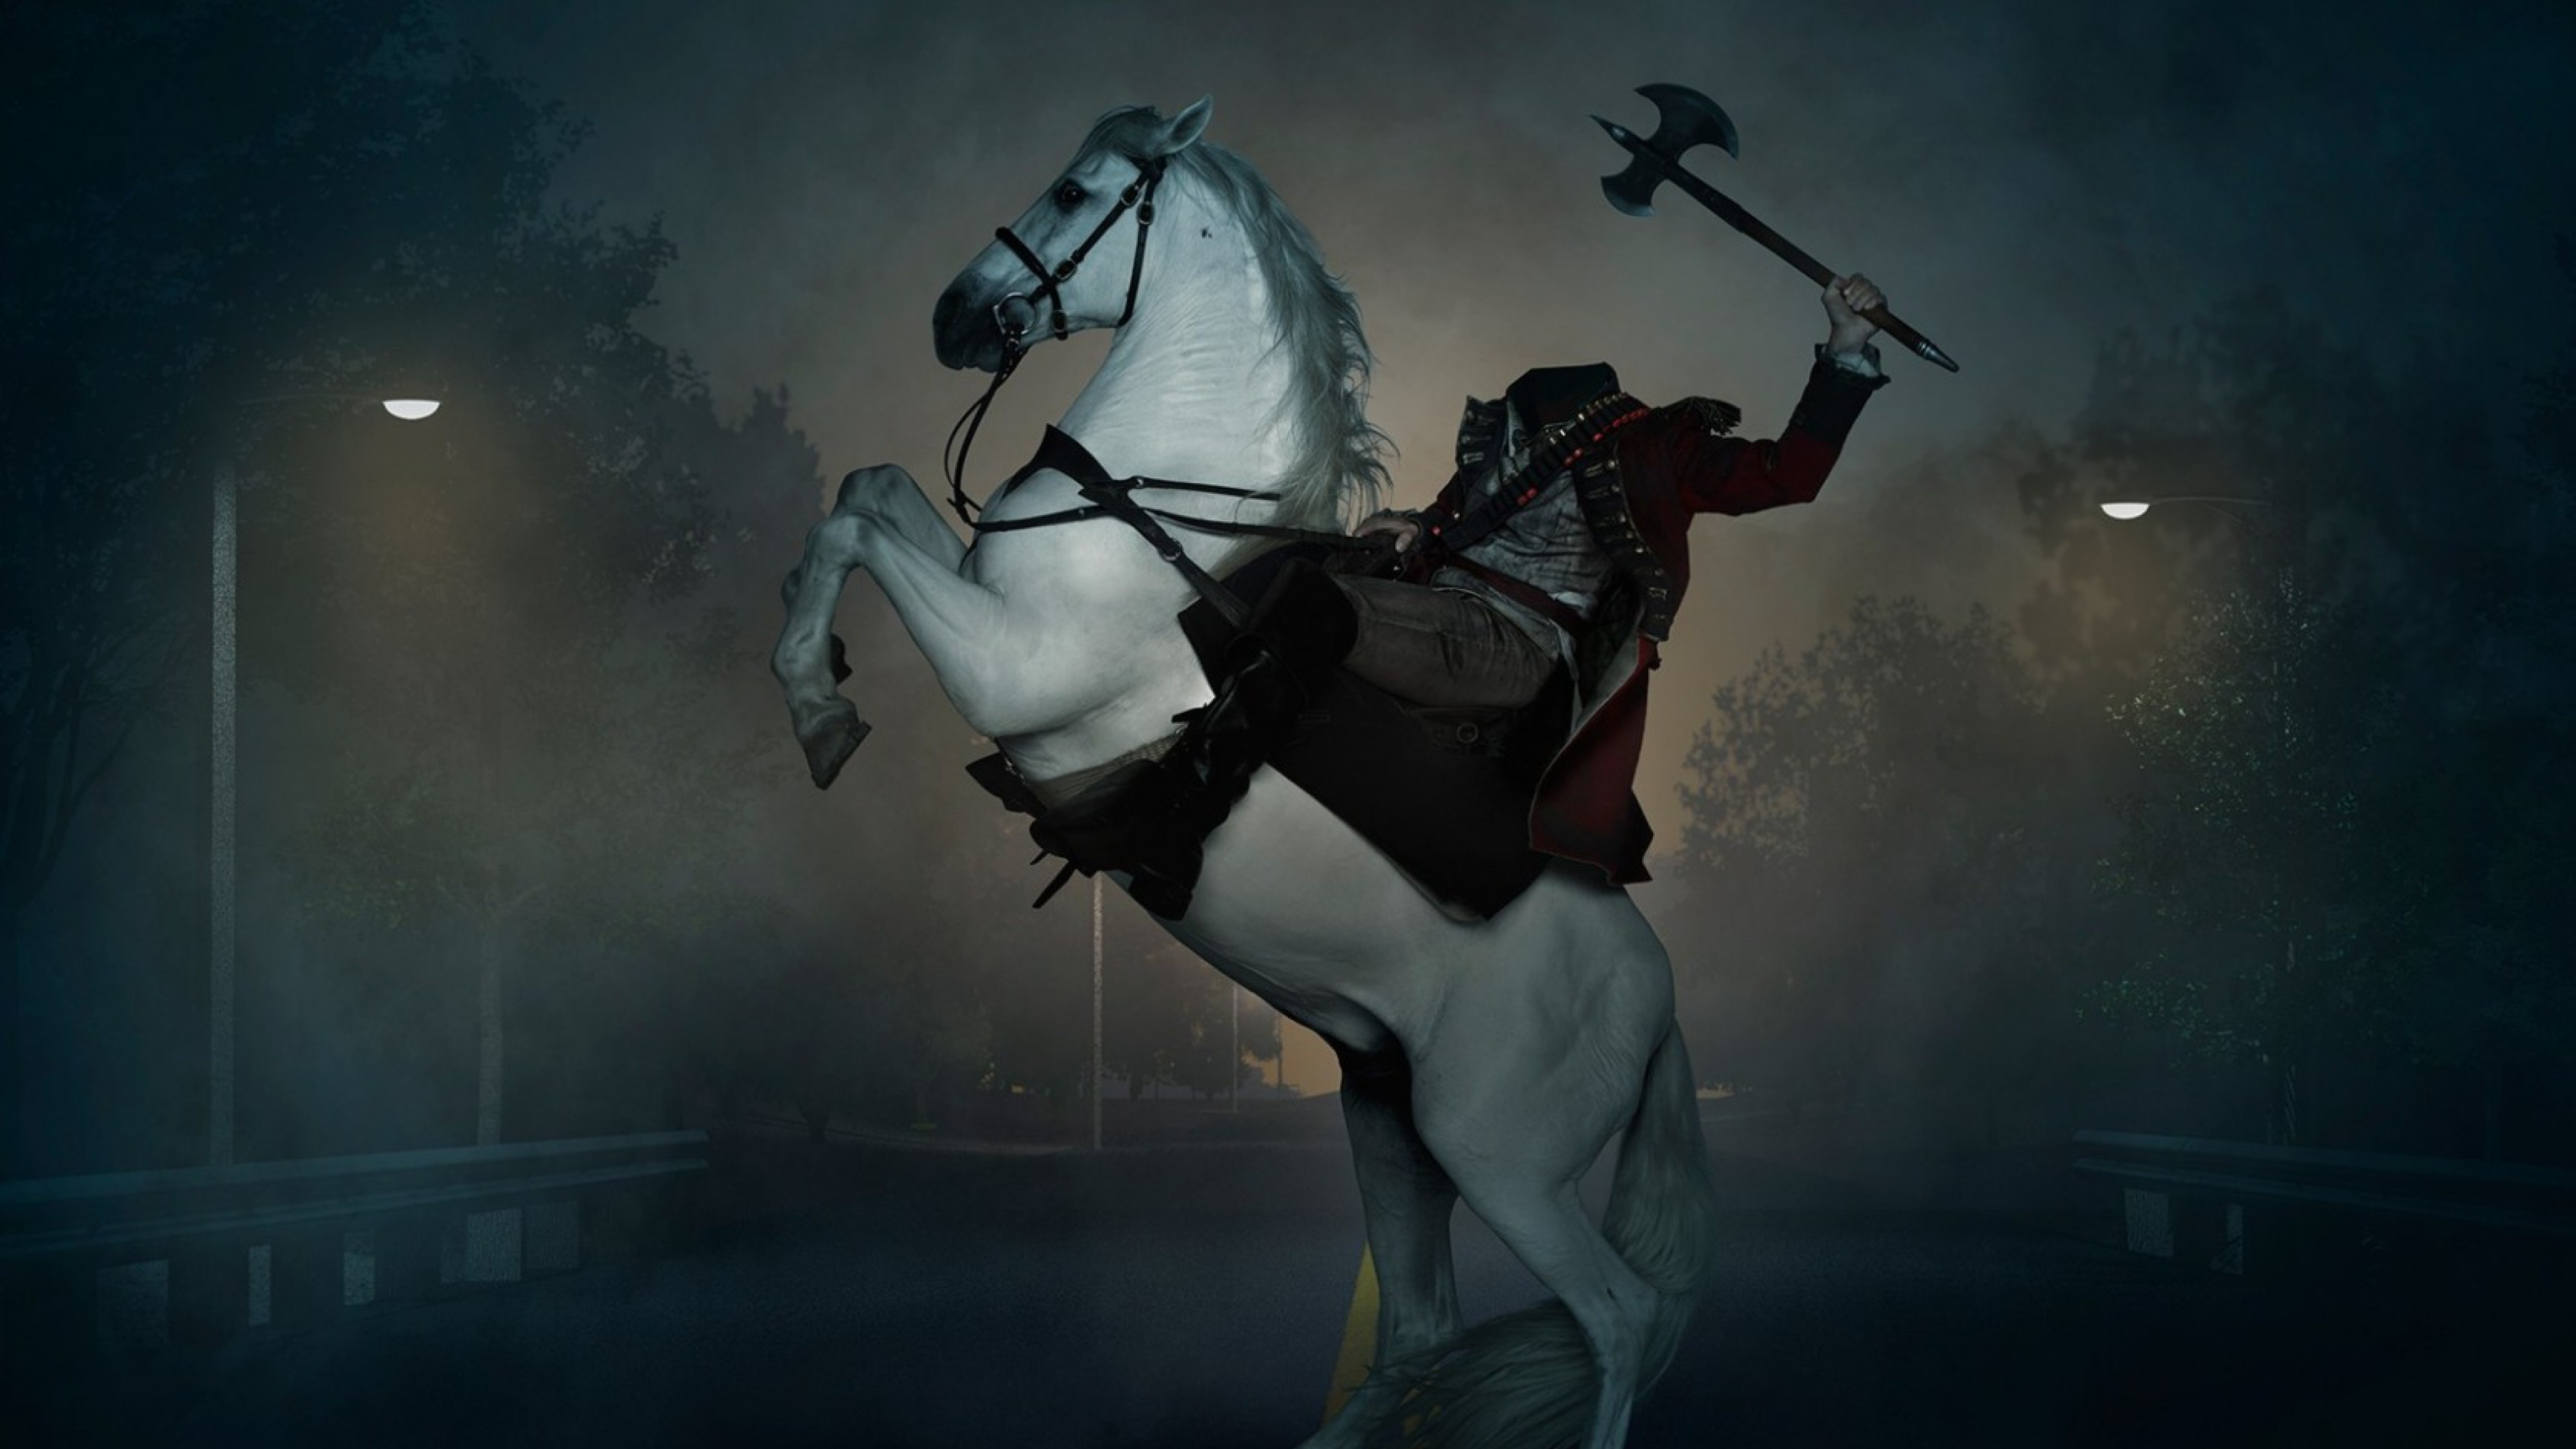 3840x2160 Pics Photos - Wallpapers Of Sleepy Hollow